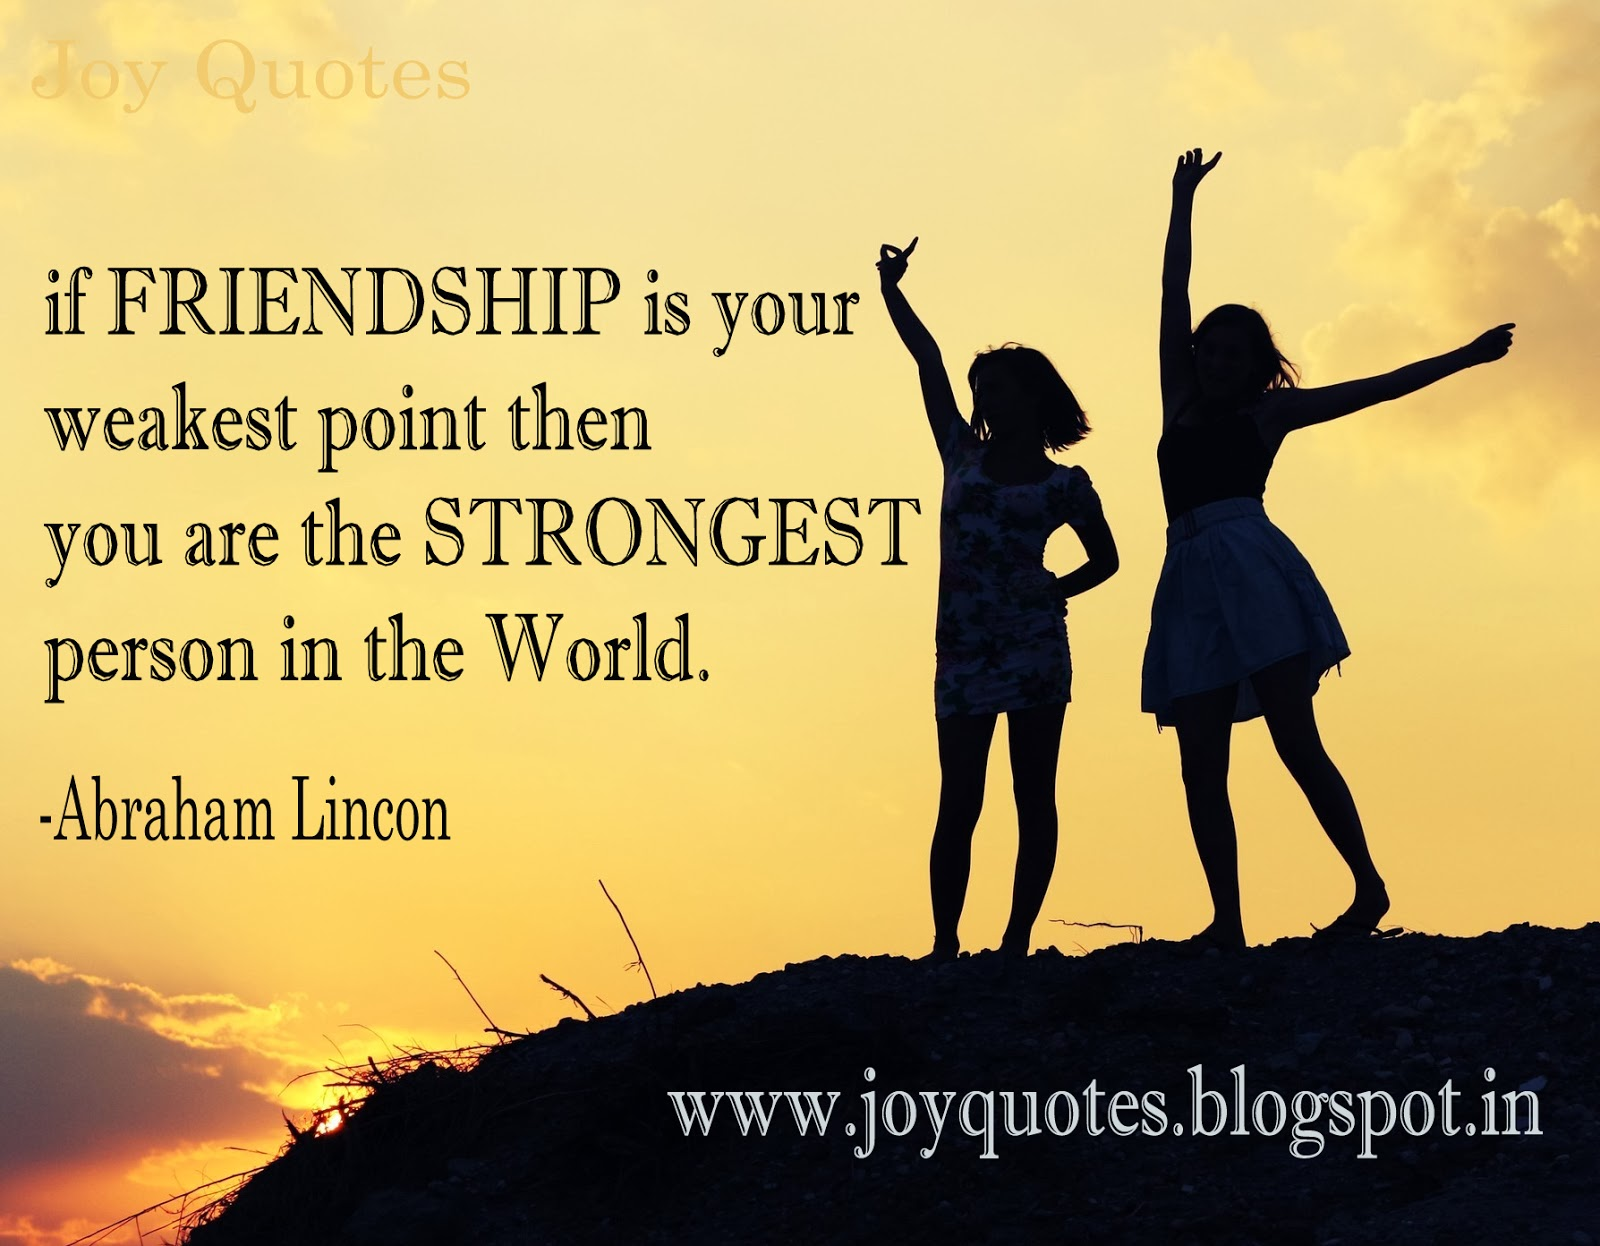 Quotes On Friendship Joy Quotes Friendship Quotes